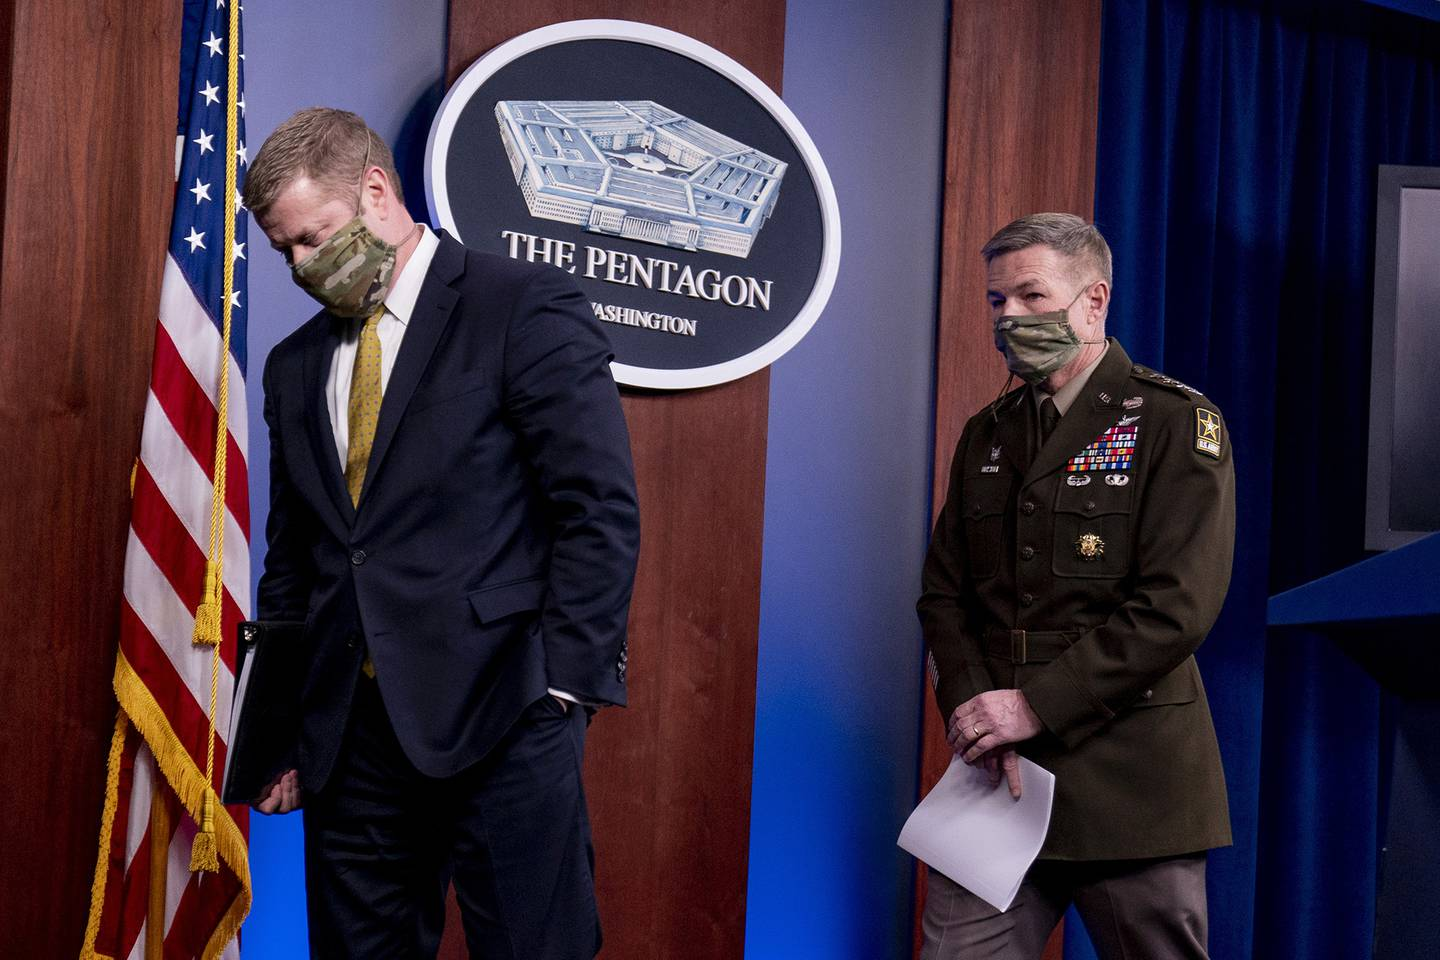 Secretary of the Army Ryan McCarthy, left, and Gen. James McConville, chief of staff of the Army, right, depart after speaking at a briefing on an investigation into Fort Hood, Texas, at the Pentagon, Tuesday, Dec. 8, 2020, in Washington.